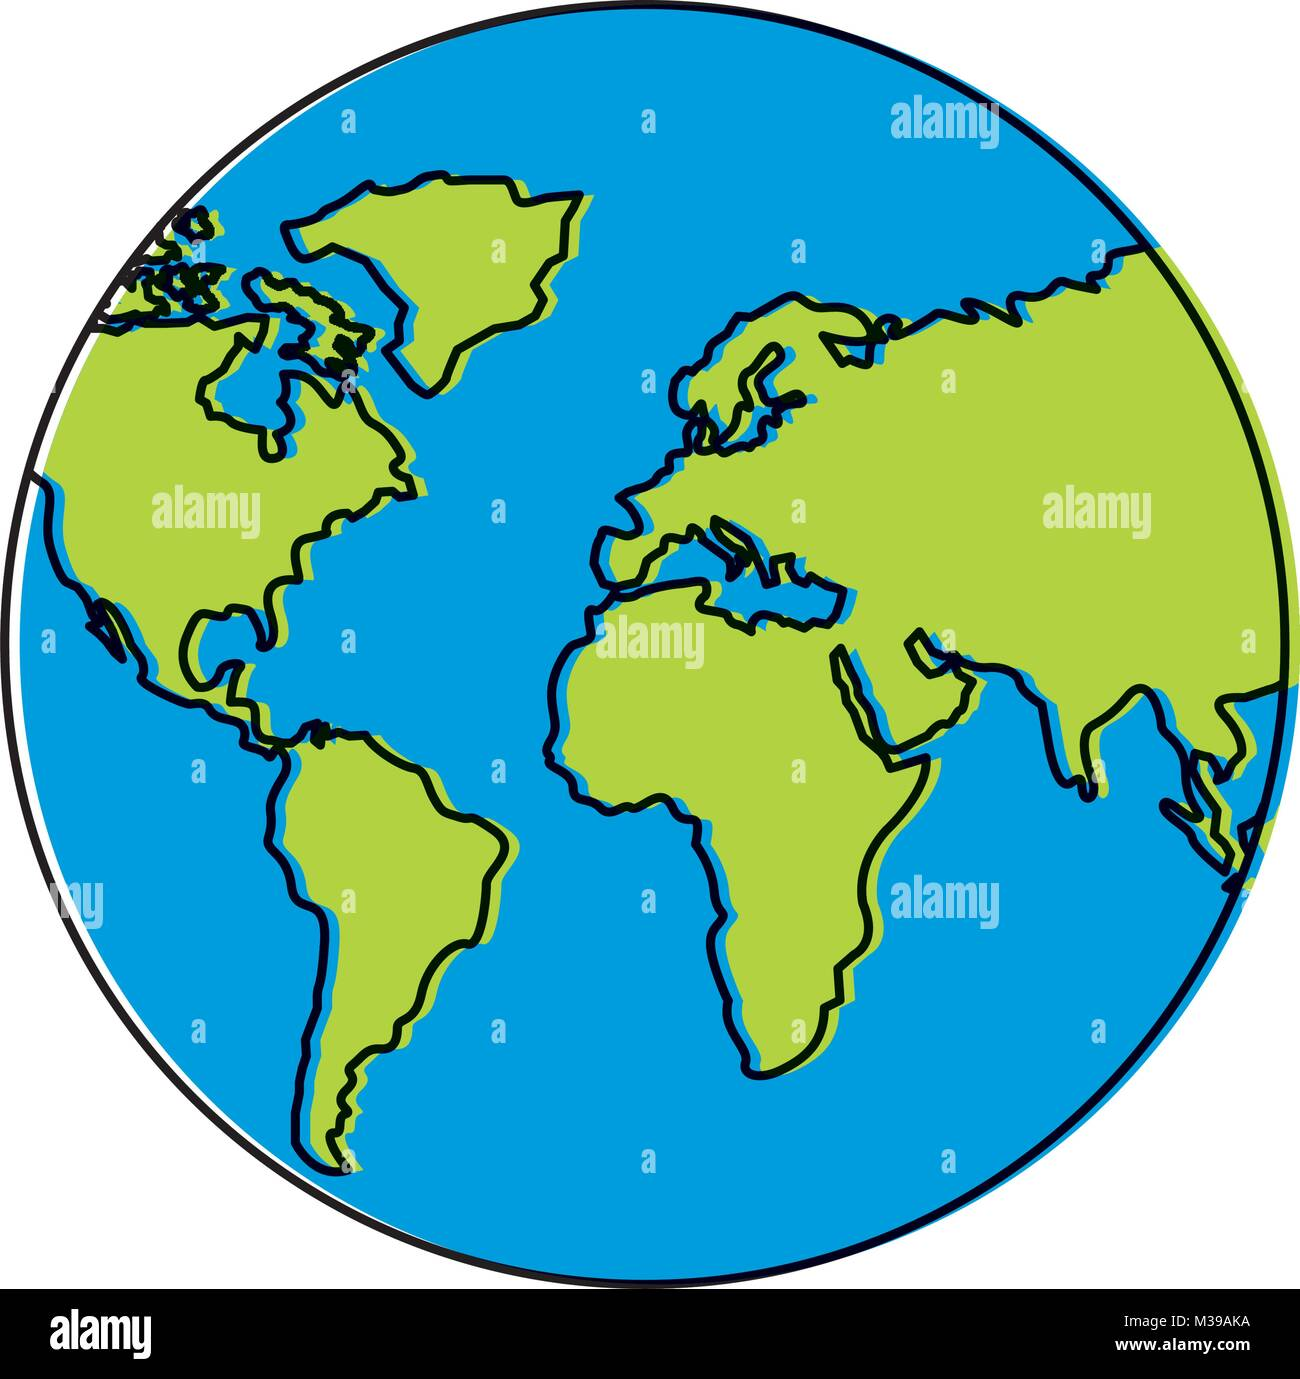 Globe Map Of The World.Earth Planet World Globe Map Icon Stock Vector Art Illustration